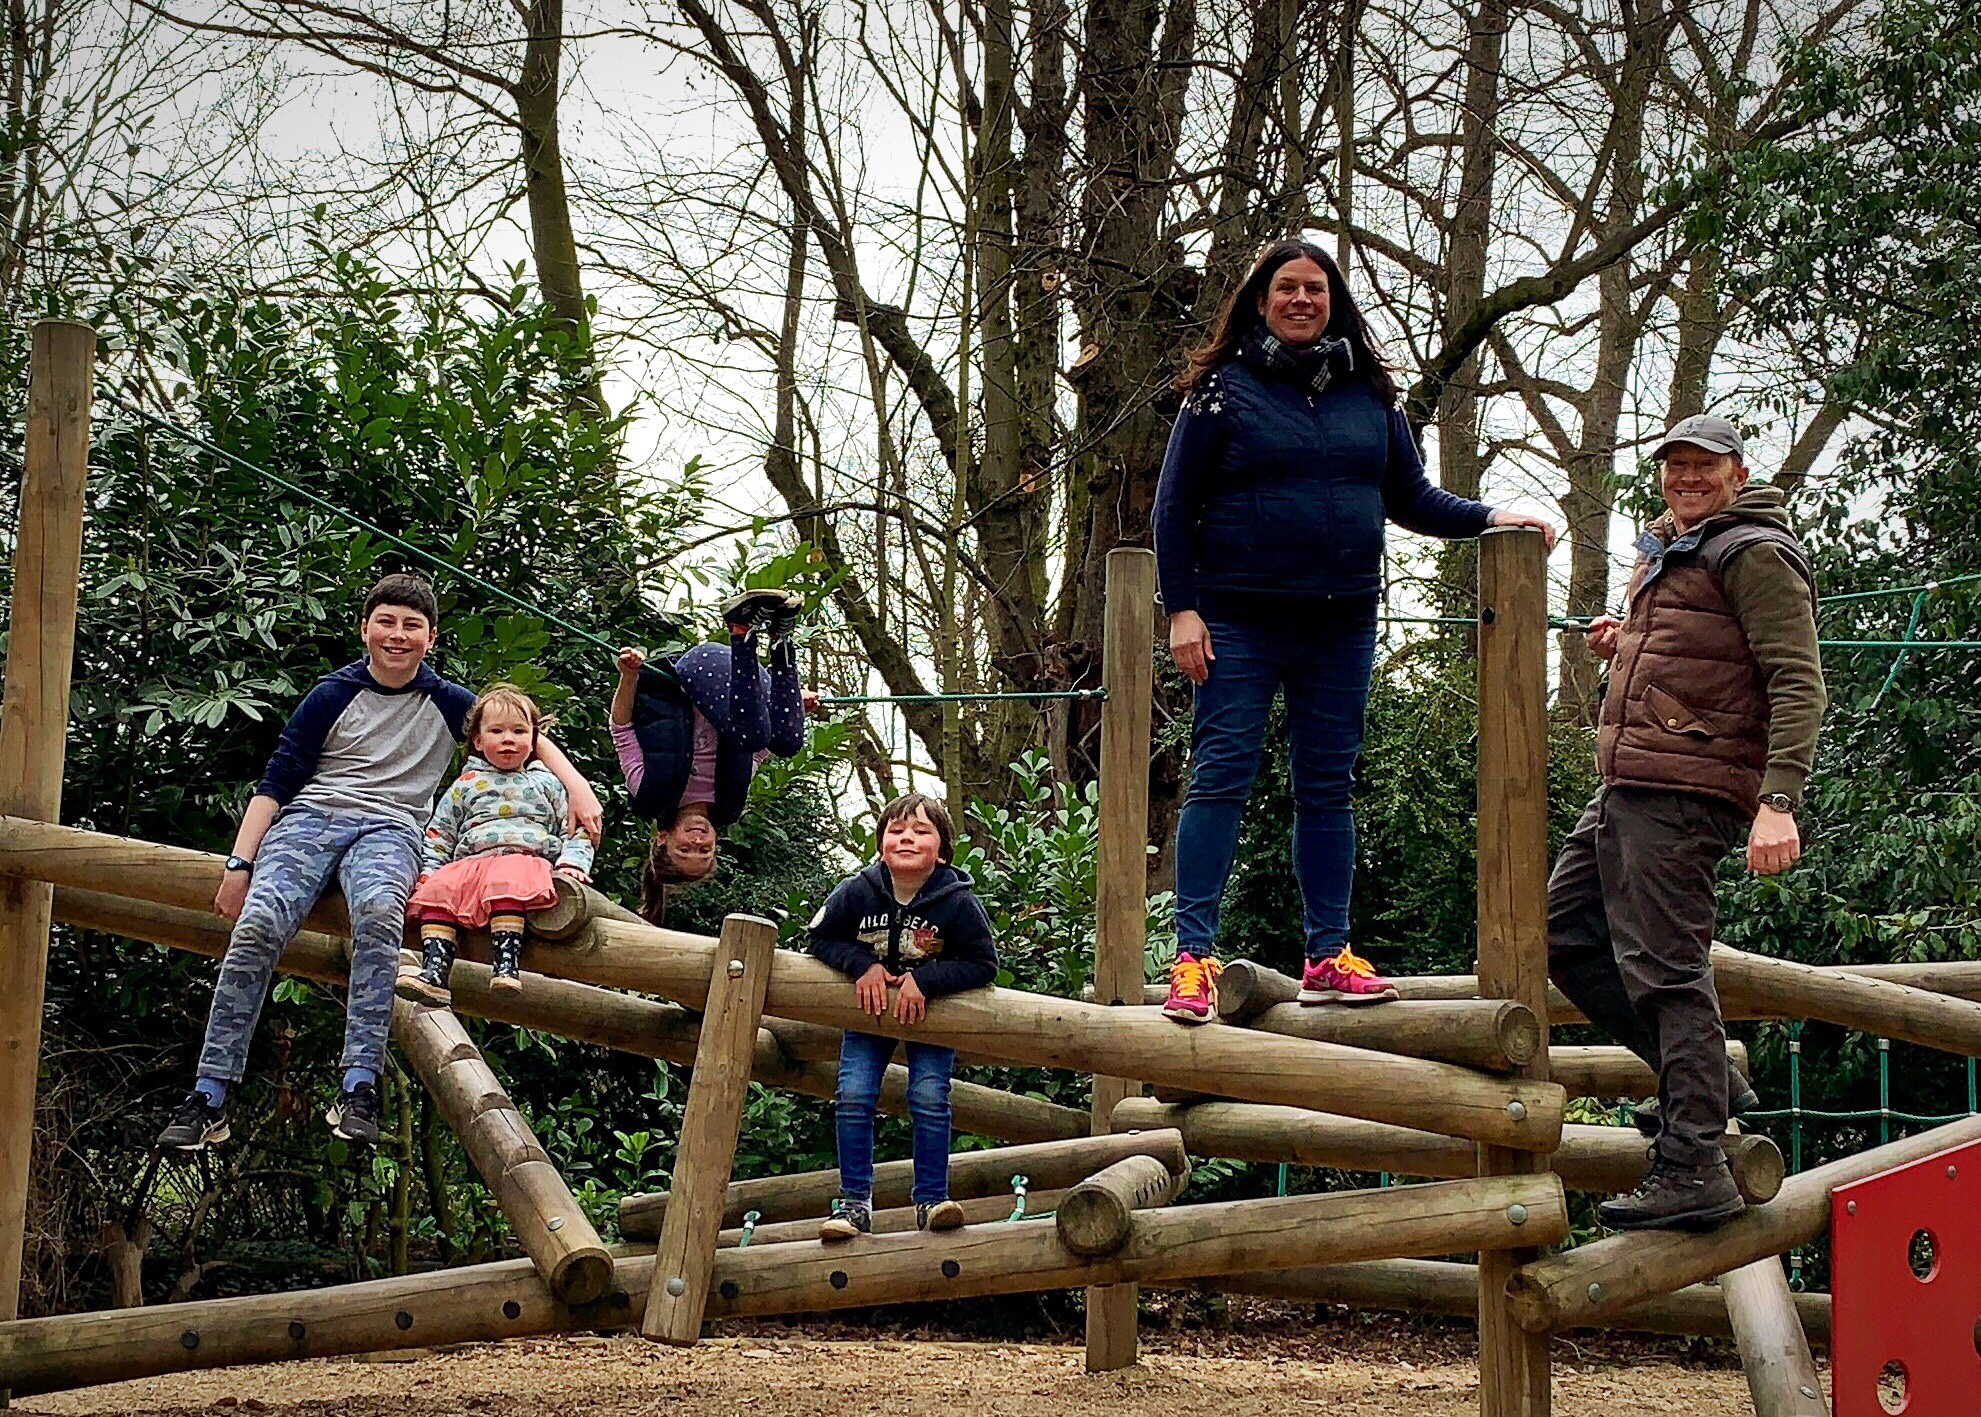 Things to do in Yorkshire at Easter -A family on a play park